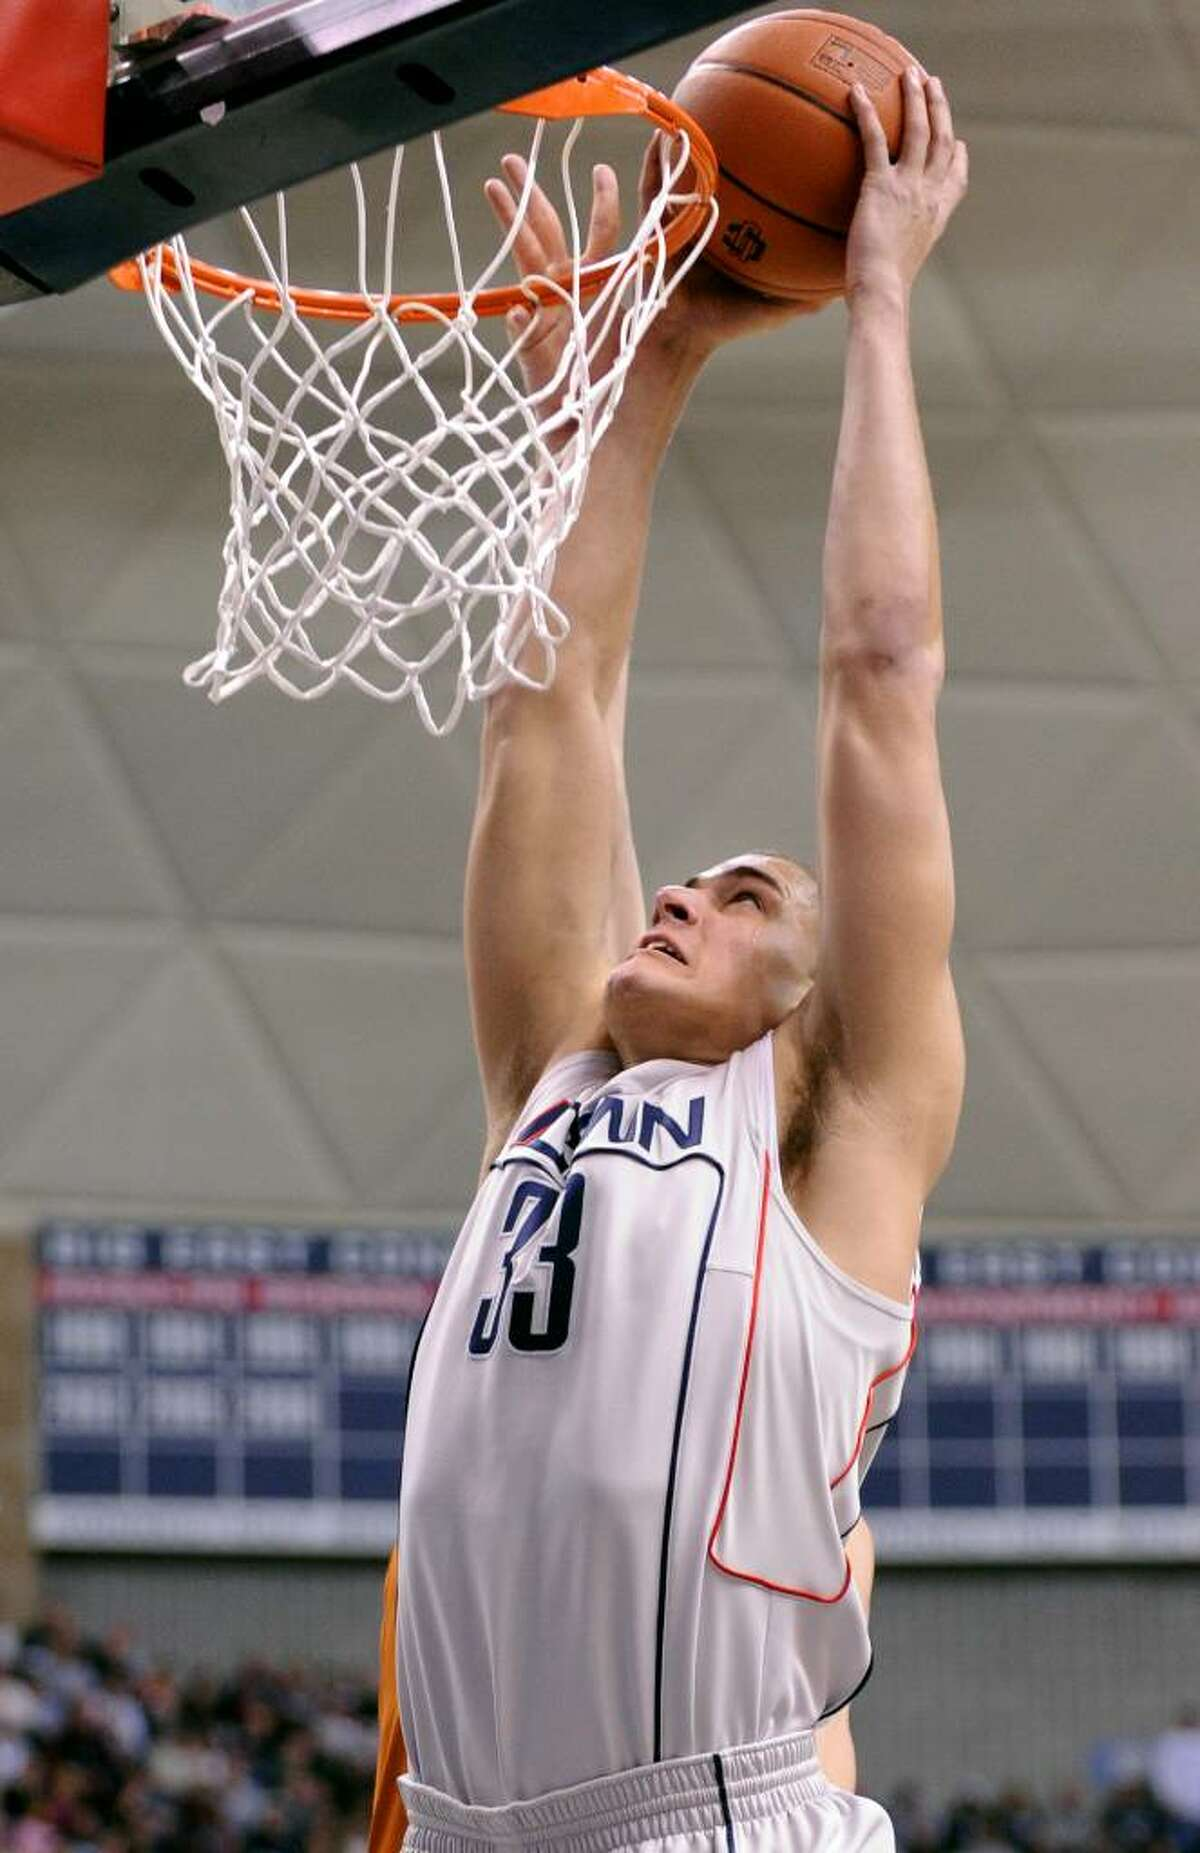 UConn's Gavin Edwards dunks the ball during the first half of Saturday's game against Texas at Gampel Pavilion.